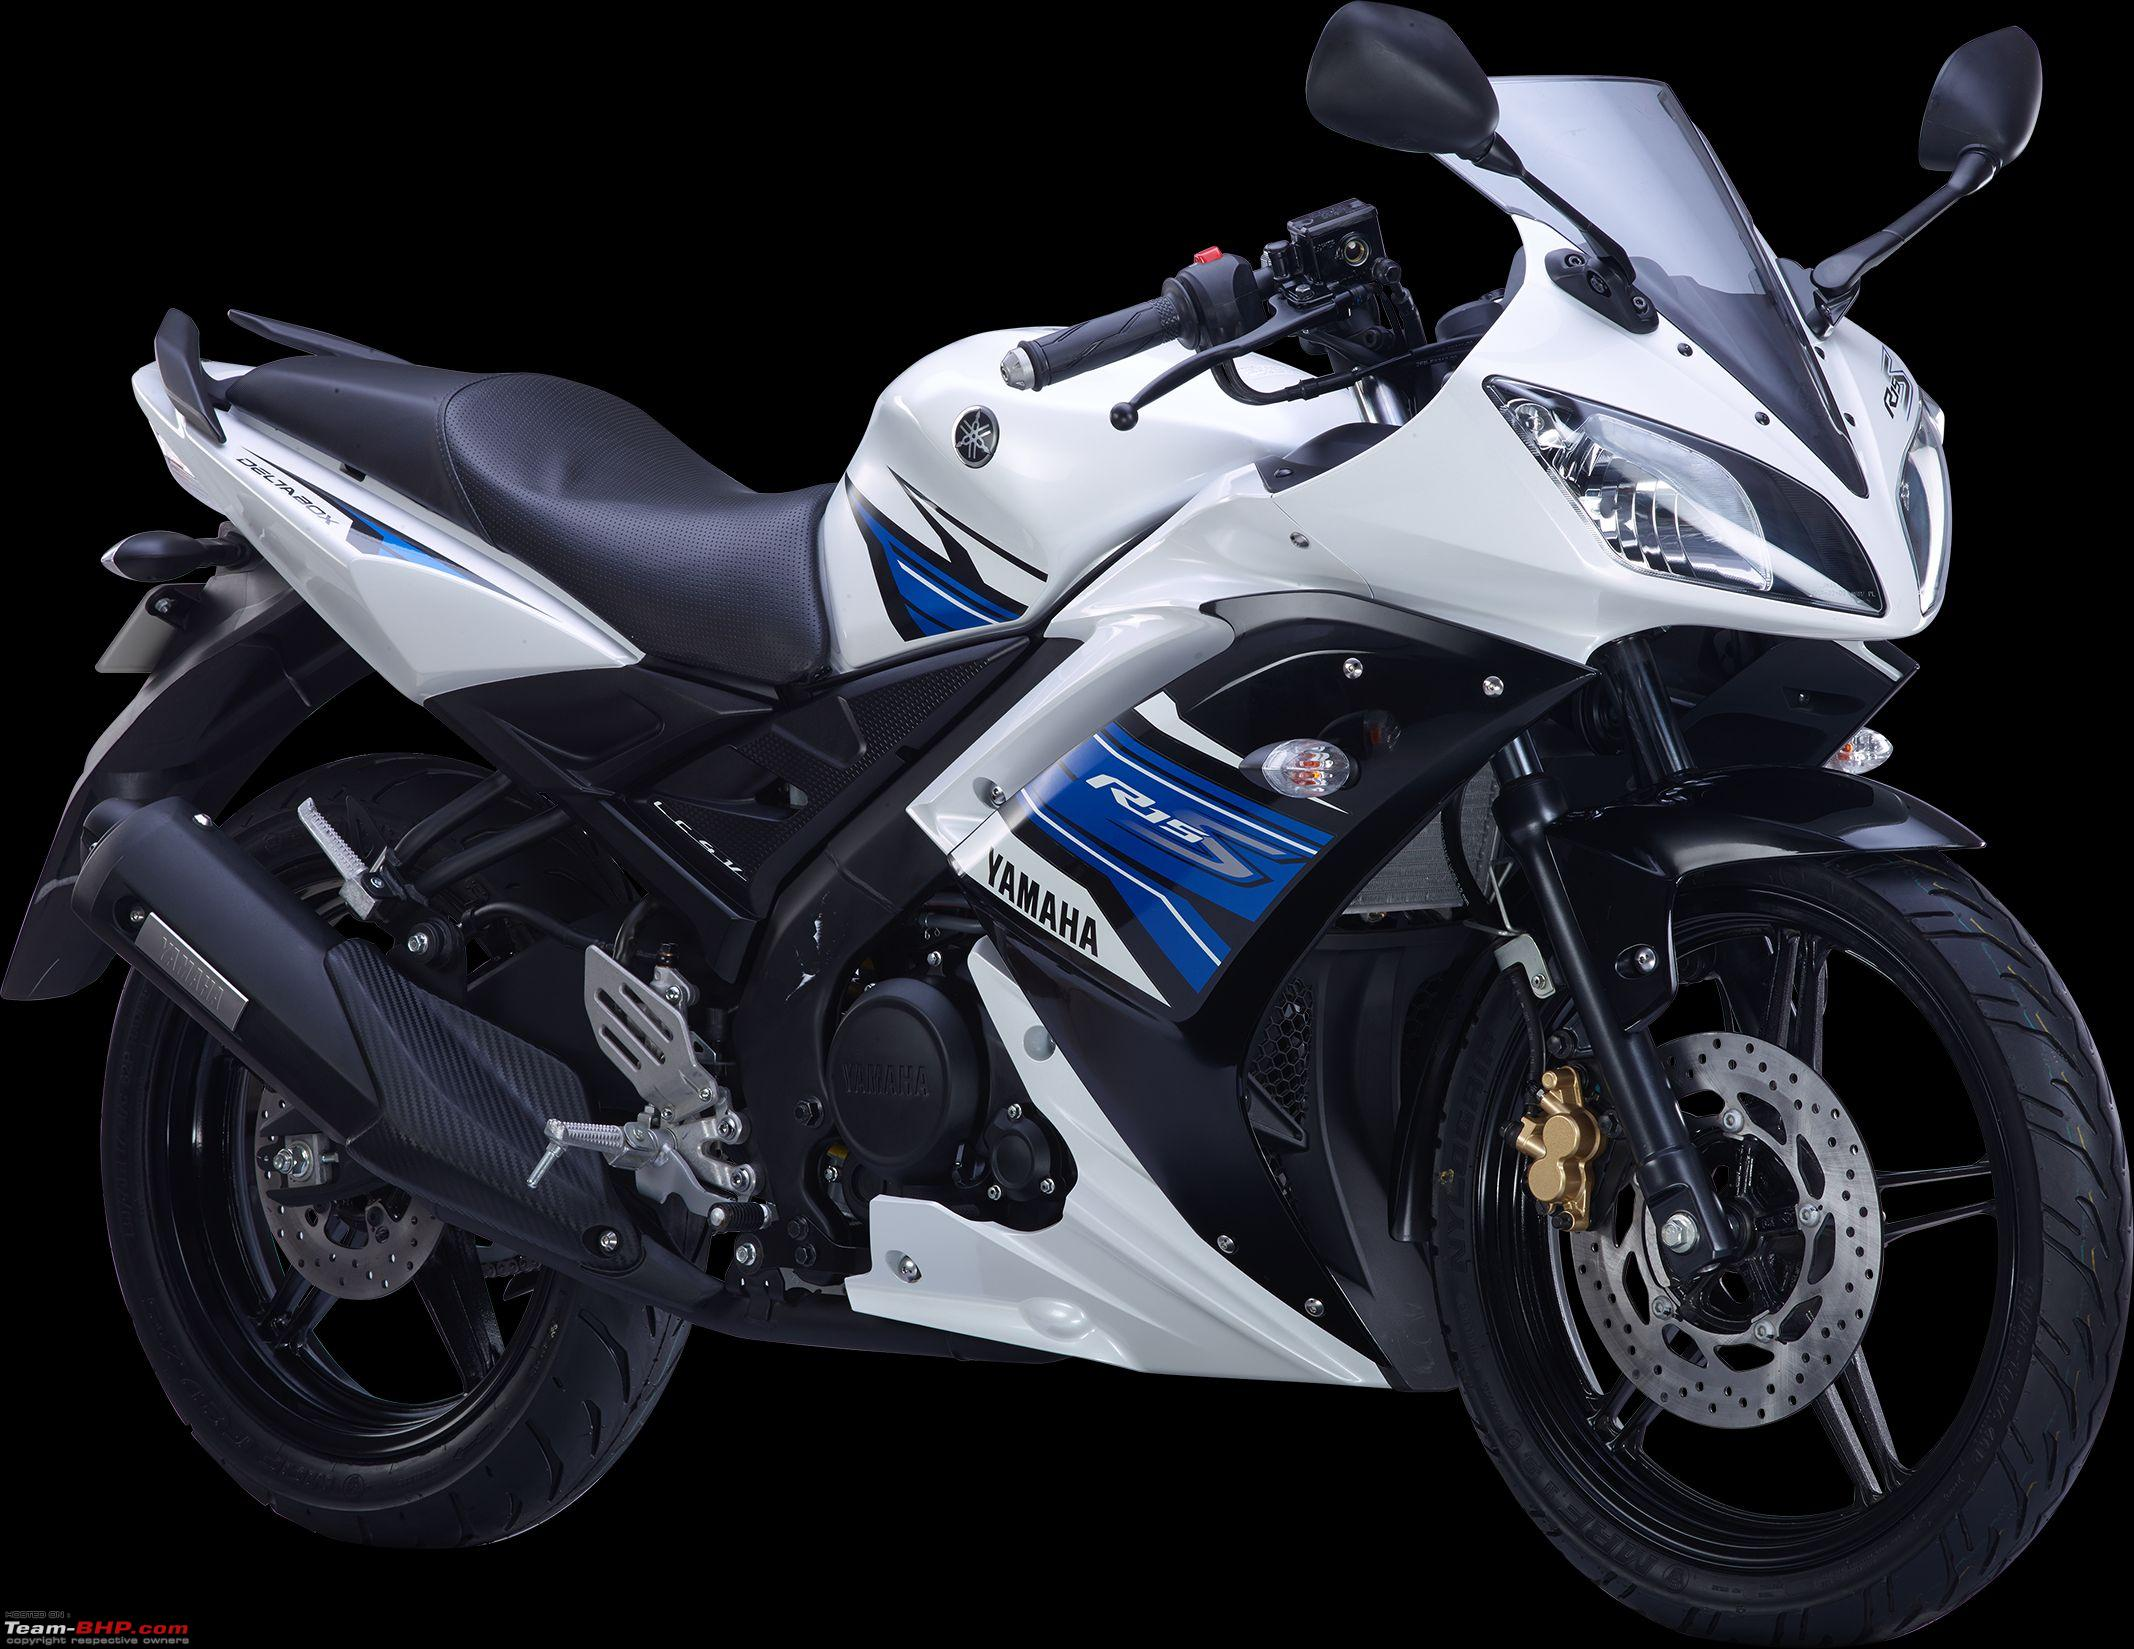 Yamaha yzf r15 s launched at rs 1 15 lakh r 15